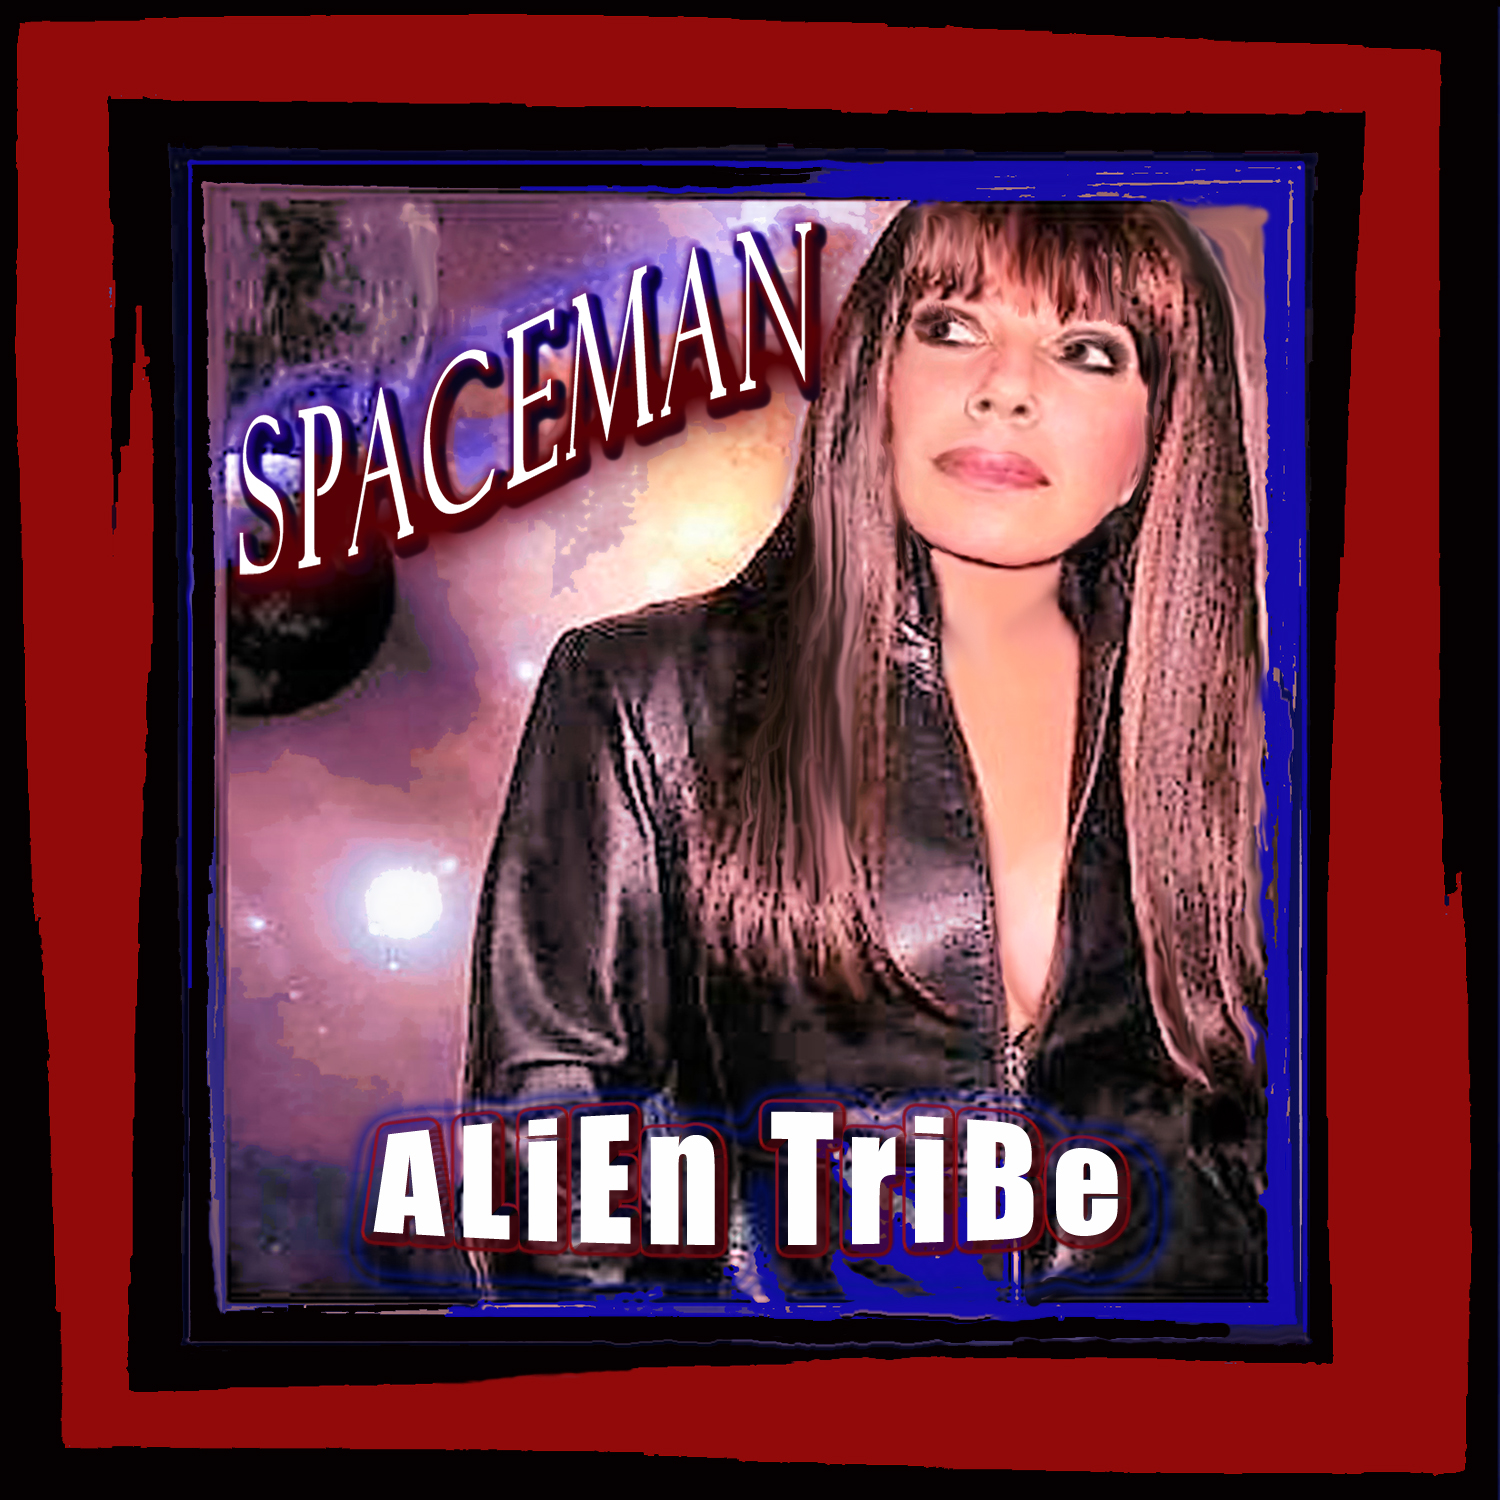 Spaceman electronic music by Alien Tribe 2021